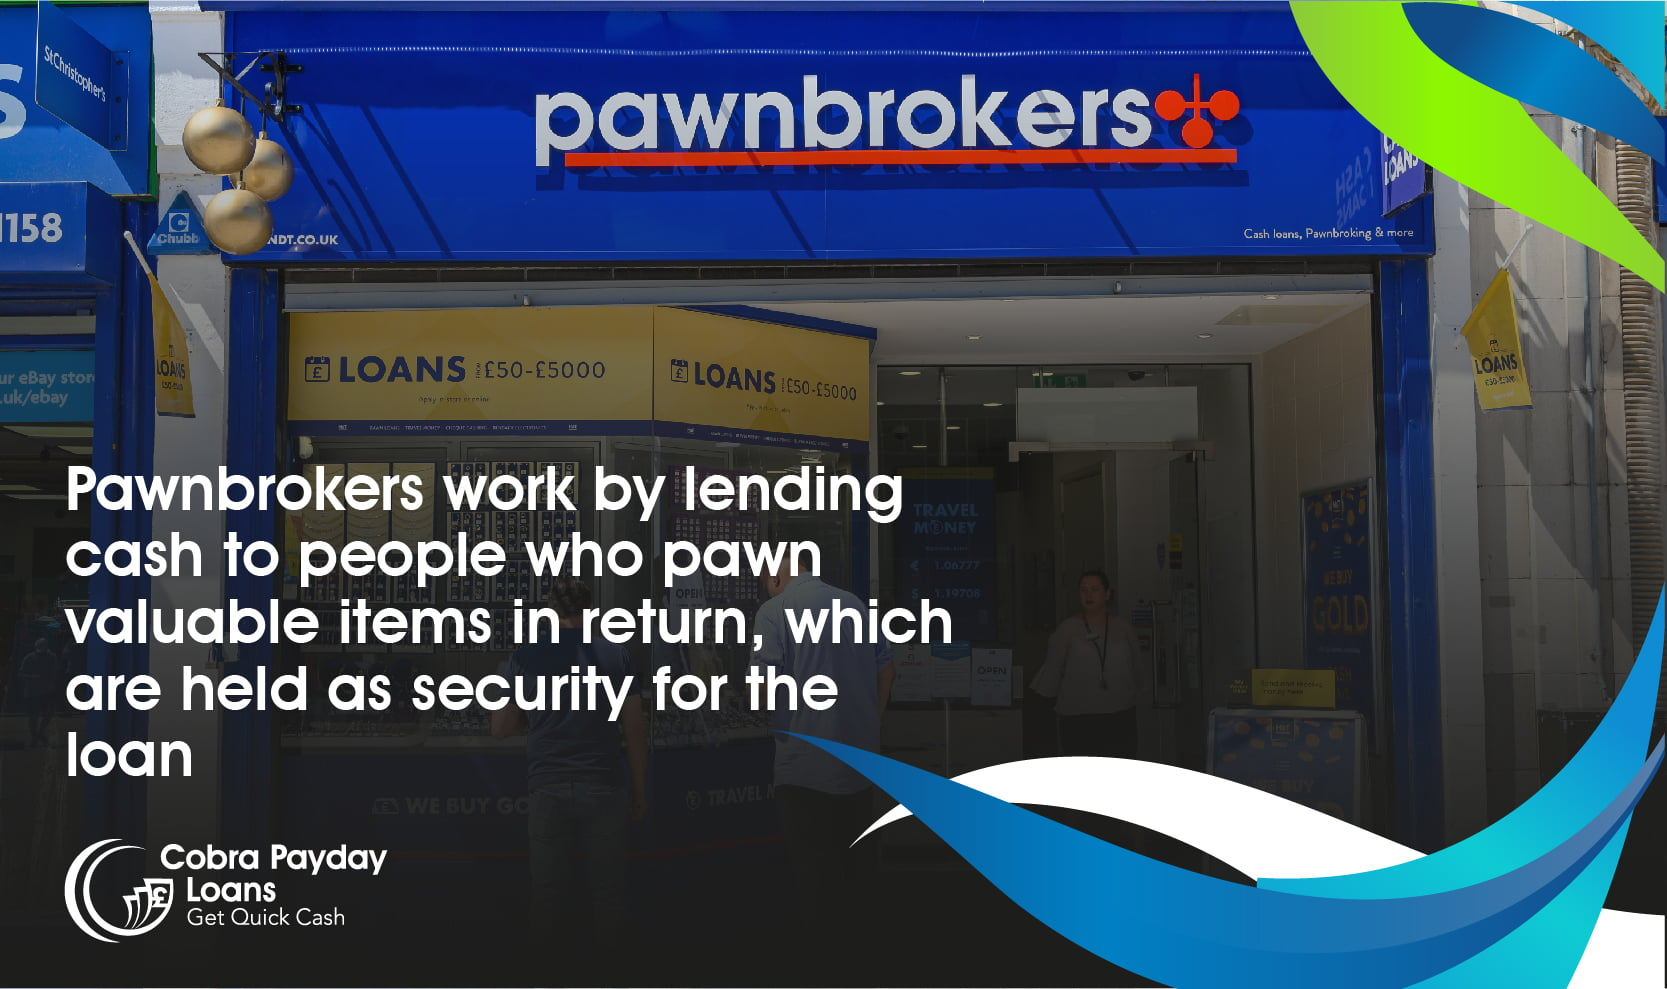 Pawnbrokers lend money in exchange for items